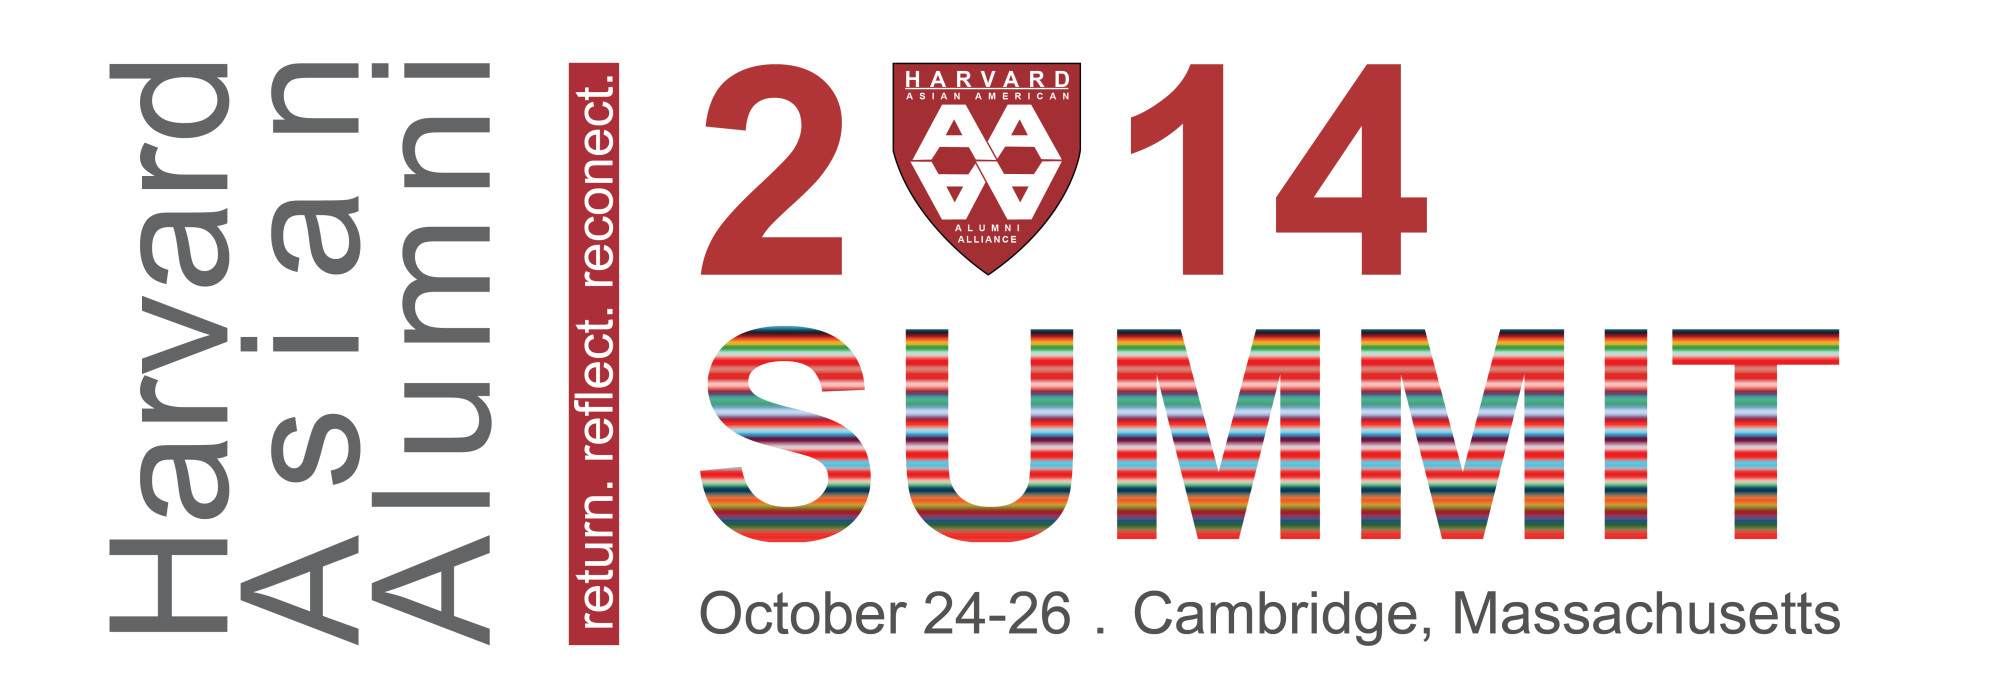 Harvard Asian Alumni Summit 2014